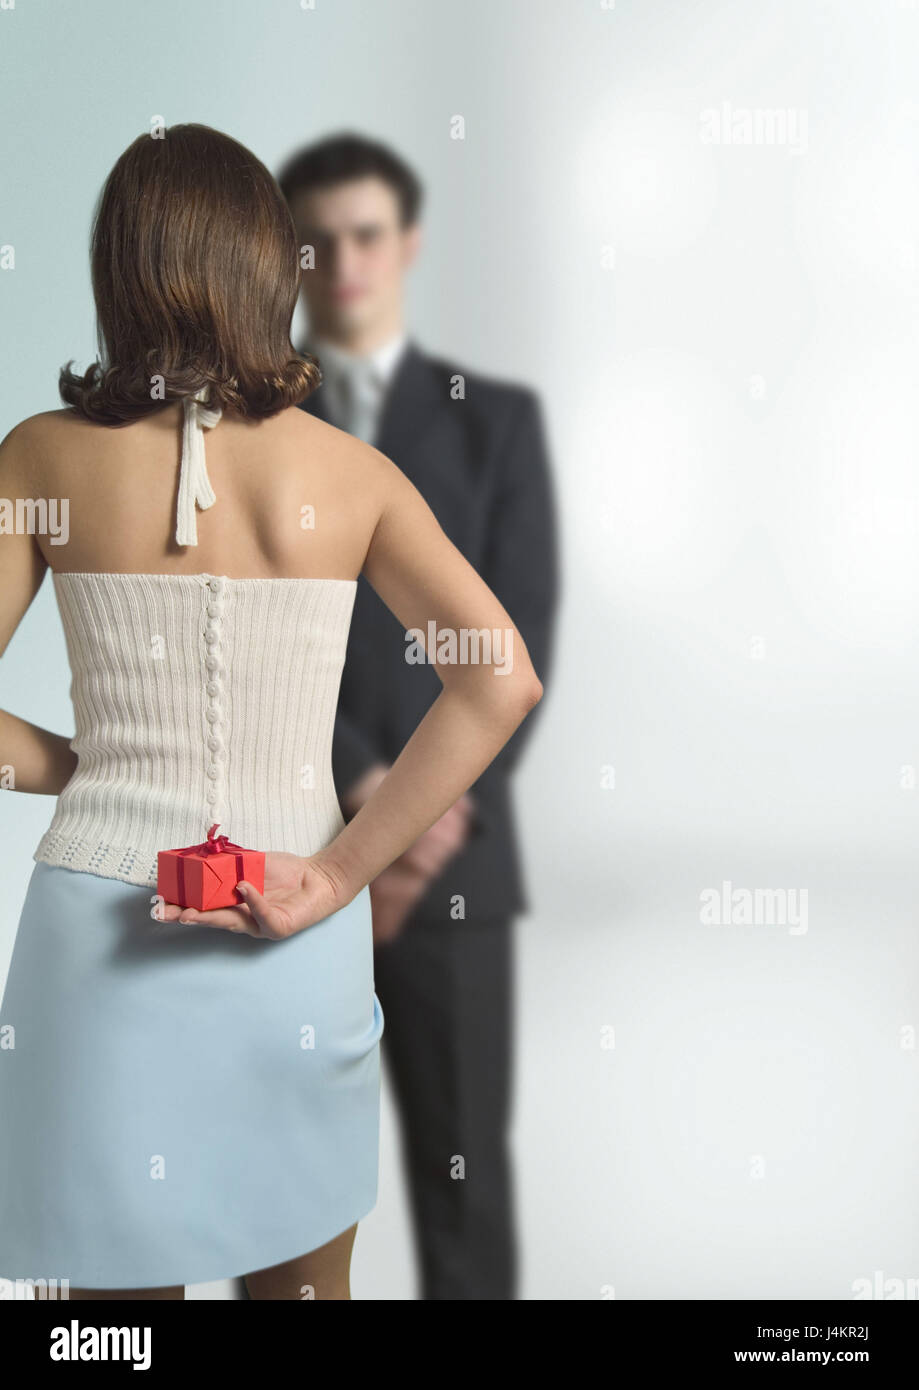 Couple Stand Towards Woman Present Hide Back Partnership Respect Falls In Love Friendship Eye Contact Surprise Birthday